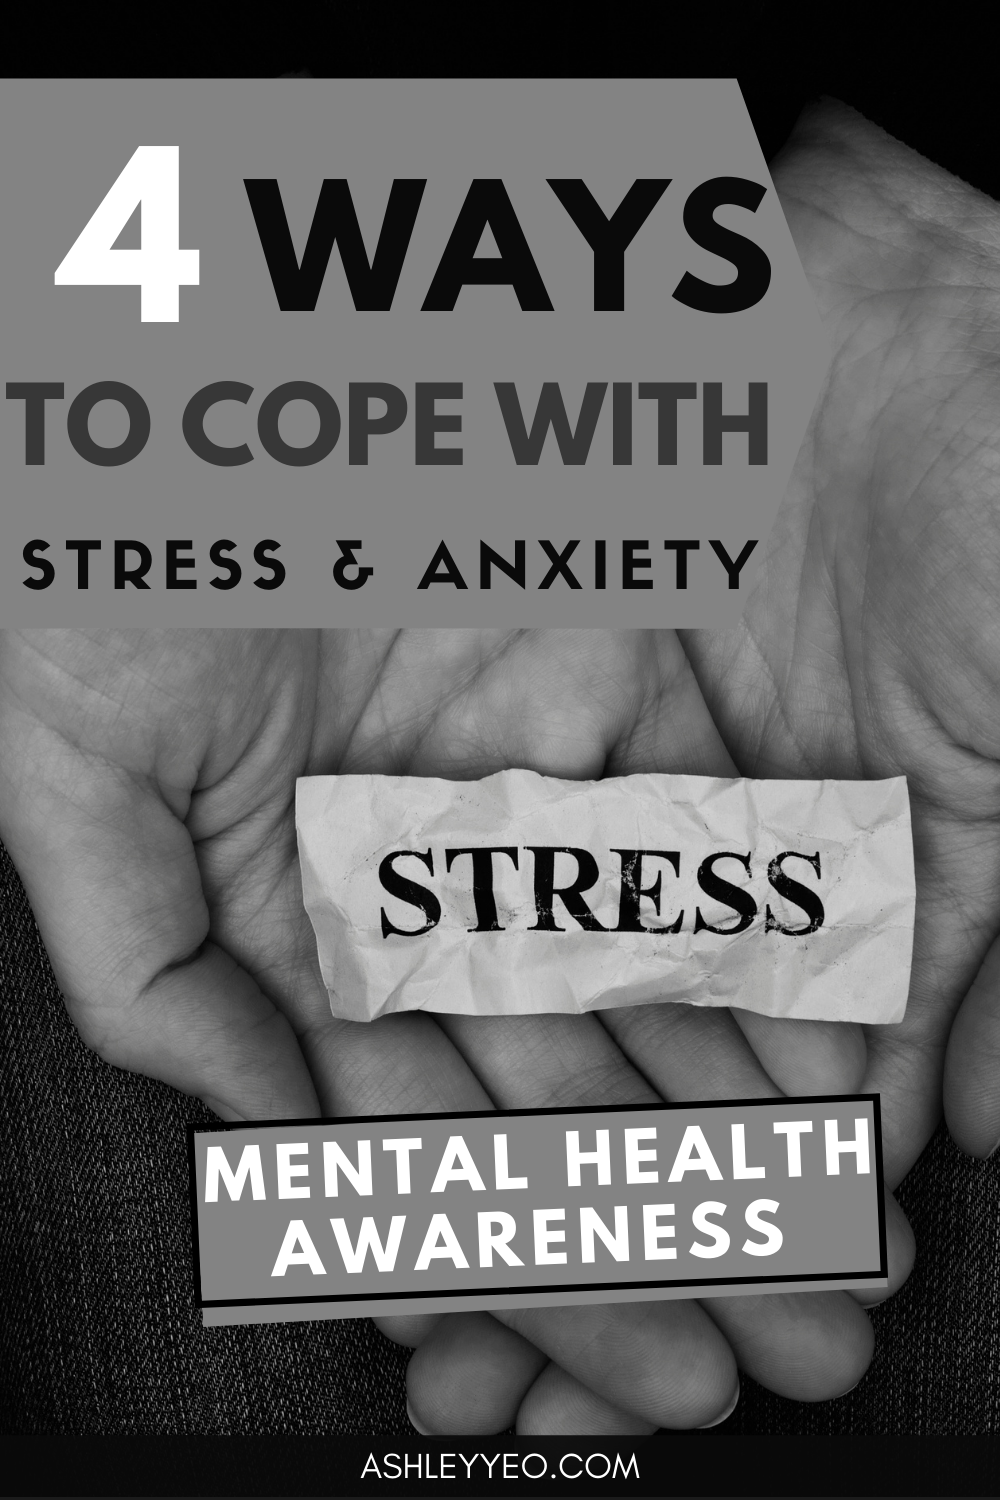 Mental Health Awareness: Four Ways to Cope with Stress and Anxiety